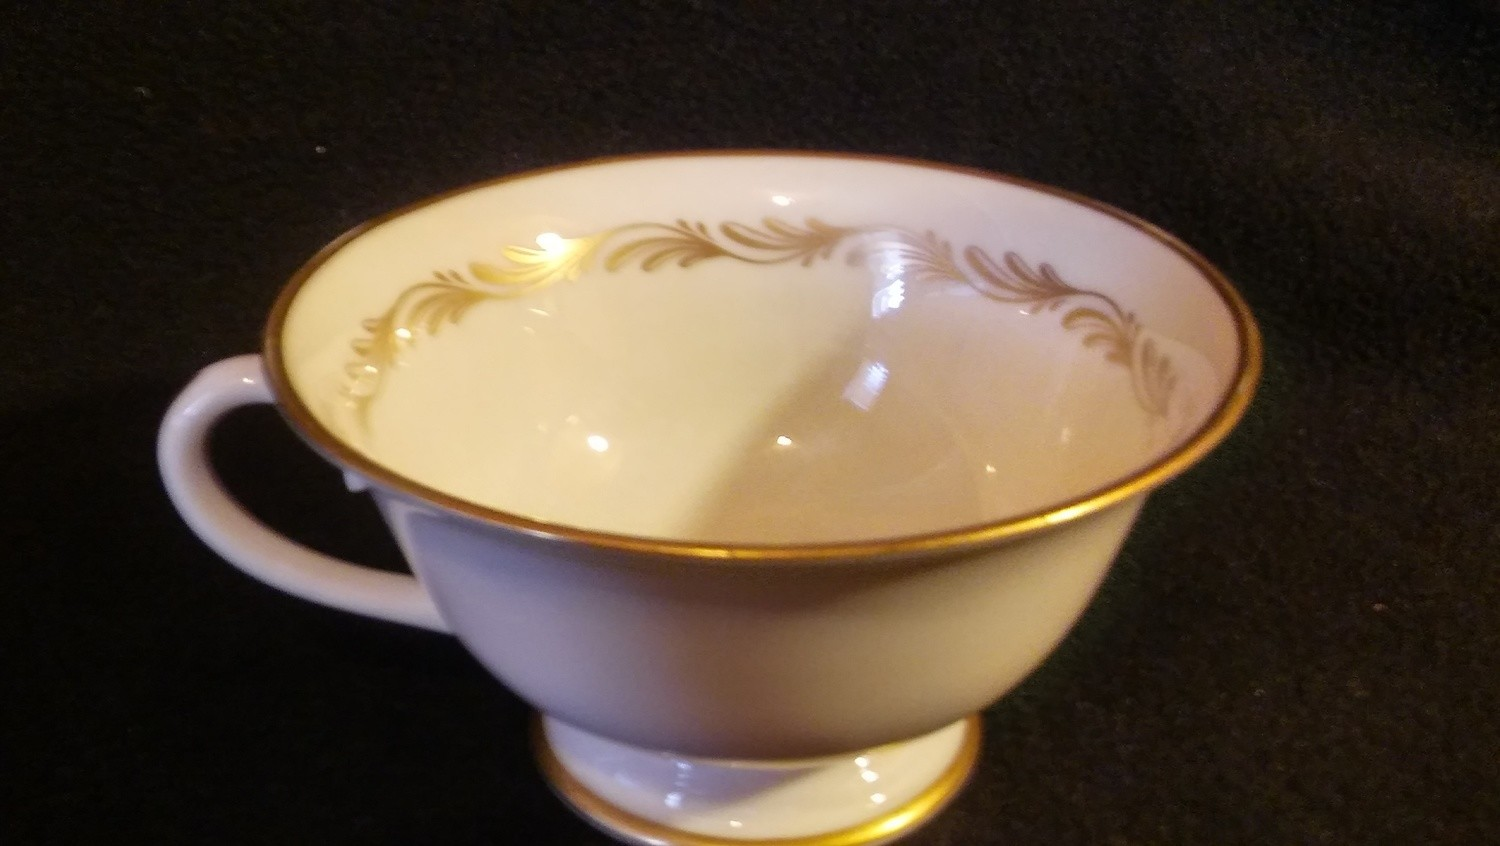 Tiffany Footed Coffee Cup, Arcadia Gold Wreath type design